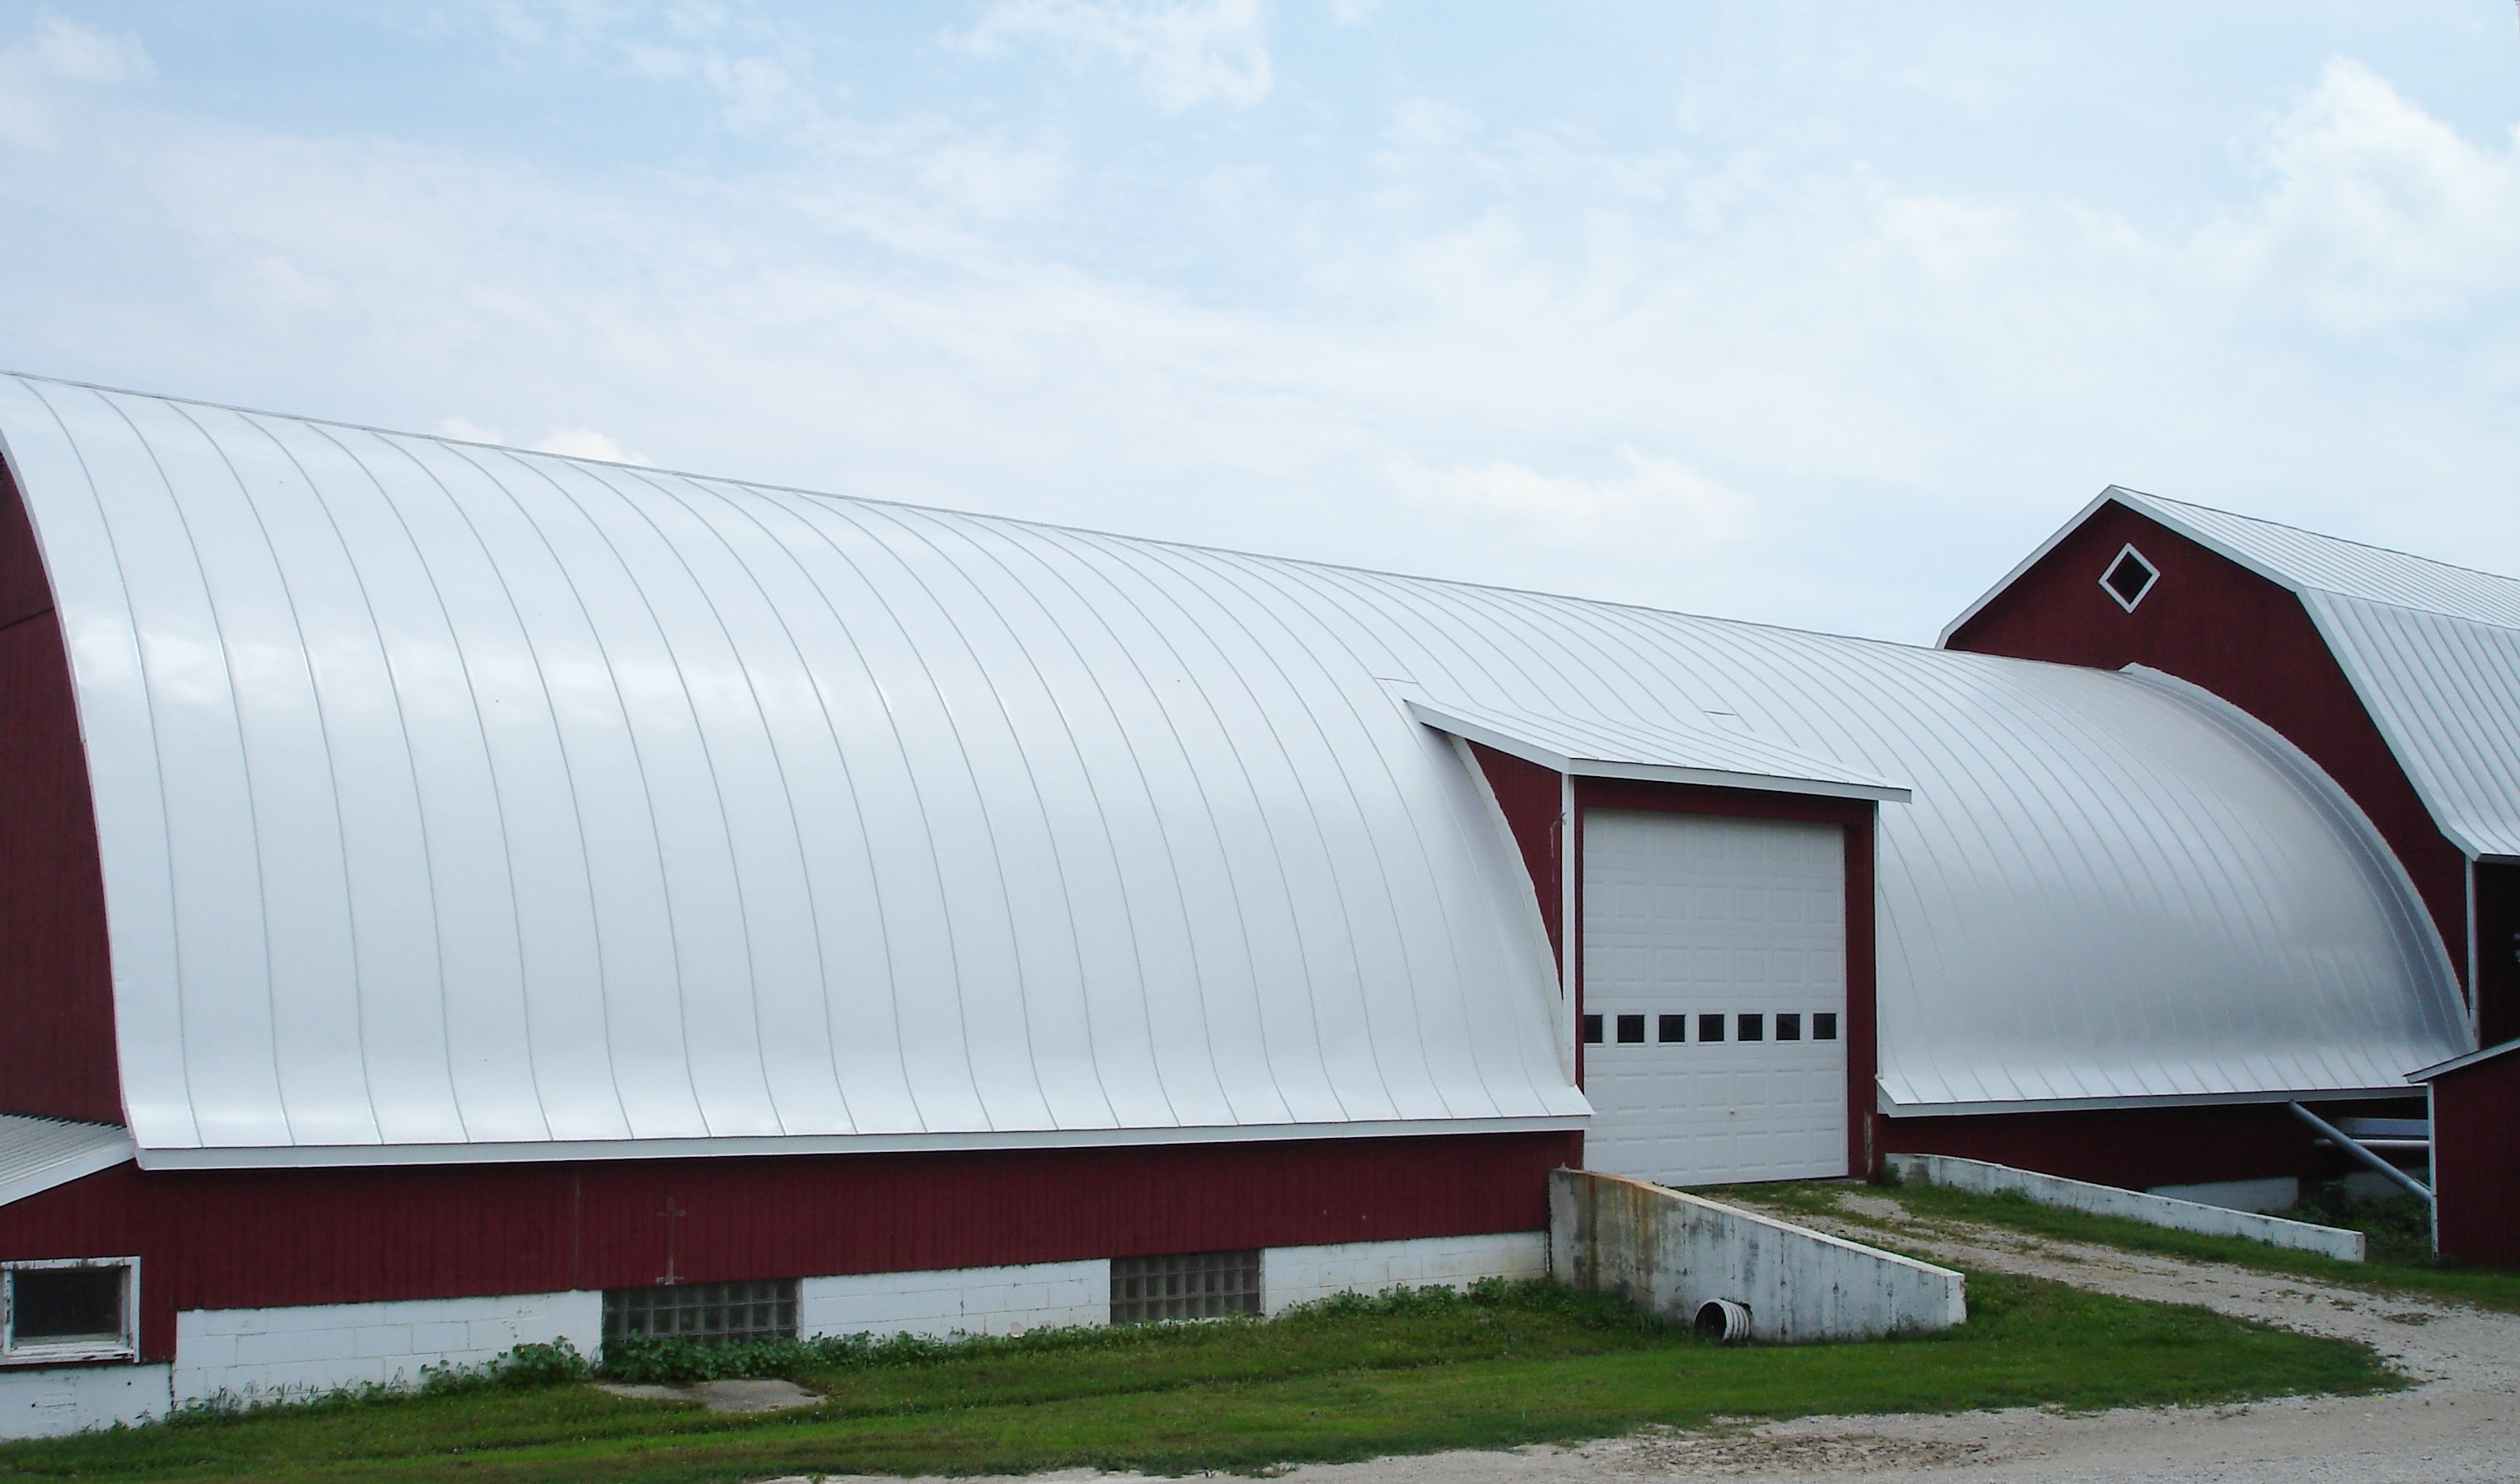 barn gothic hip bright white silver galvanized standing seam sheet metal roofing agricultural culpitt wisconsin illinois minnesota iowa north dakota